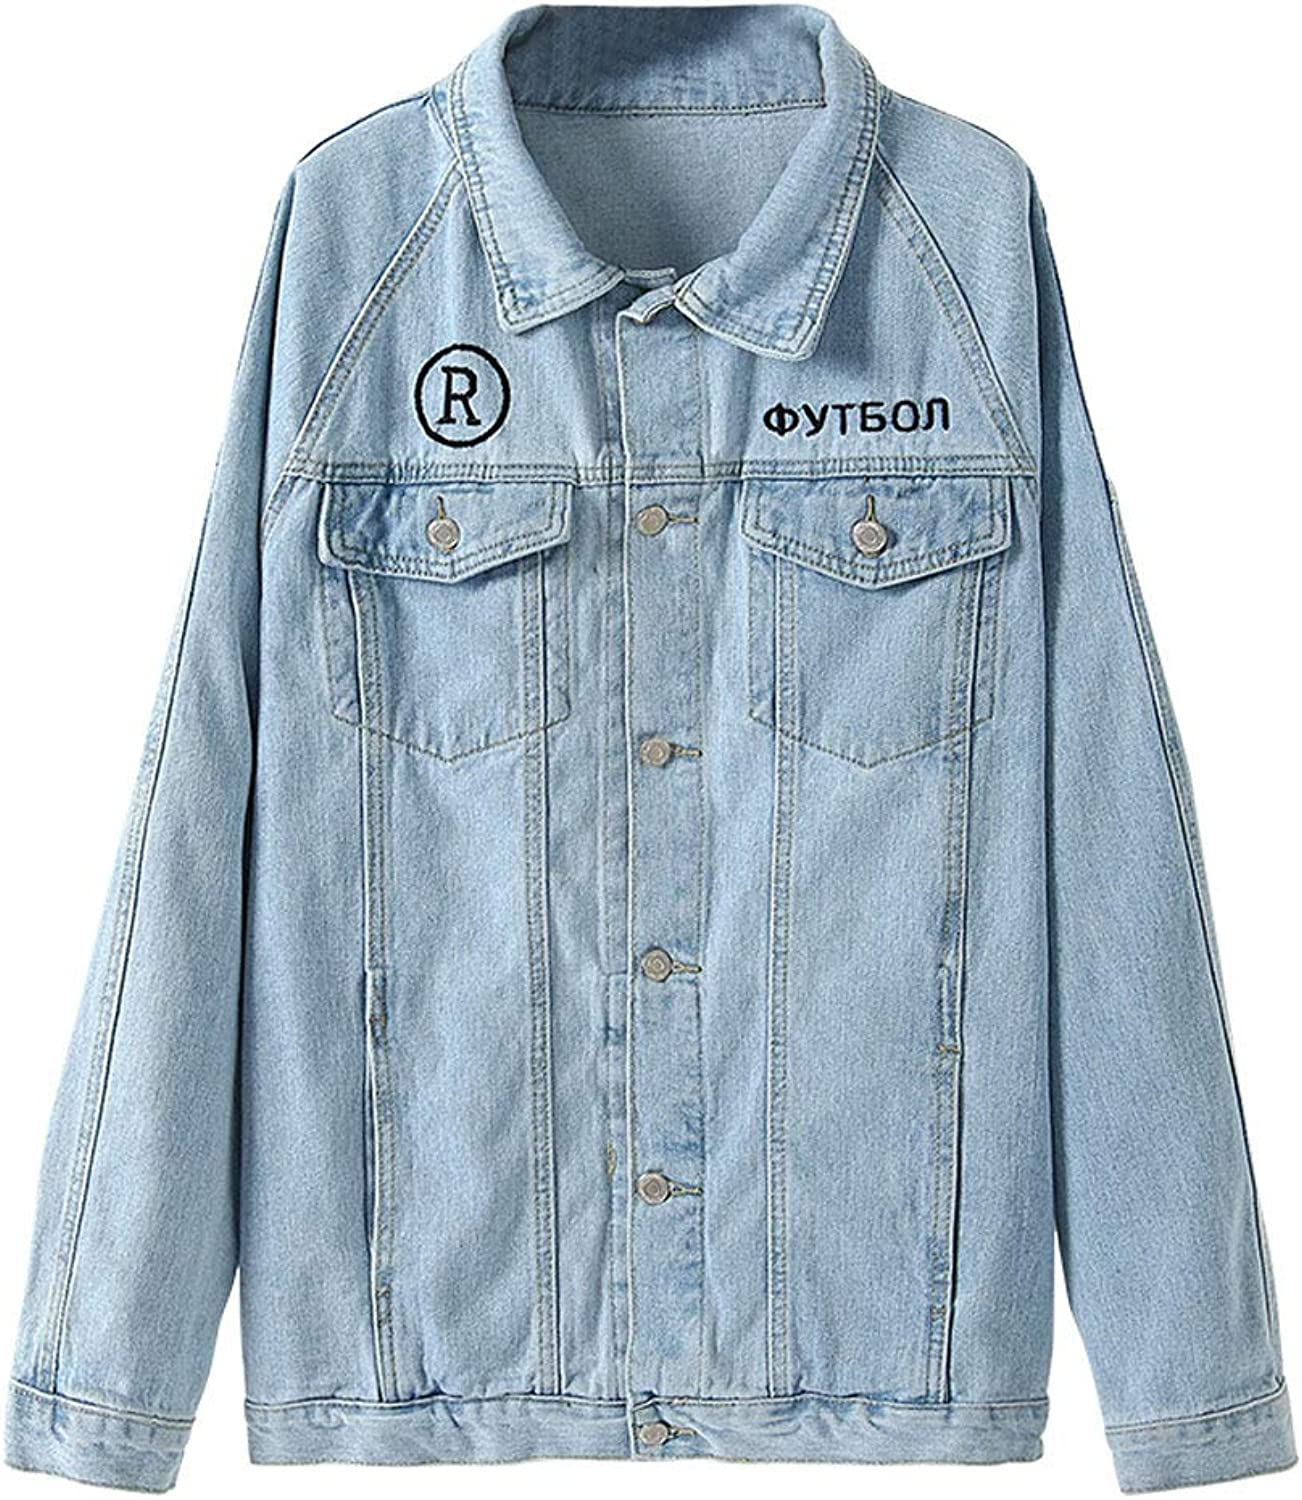 Fashion Loose Boyfriend Denim Jacket Women's Embroidered Jacket Casual Long Sleeve Coat Medium and Long Section (color   Light bluee, Size   L)